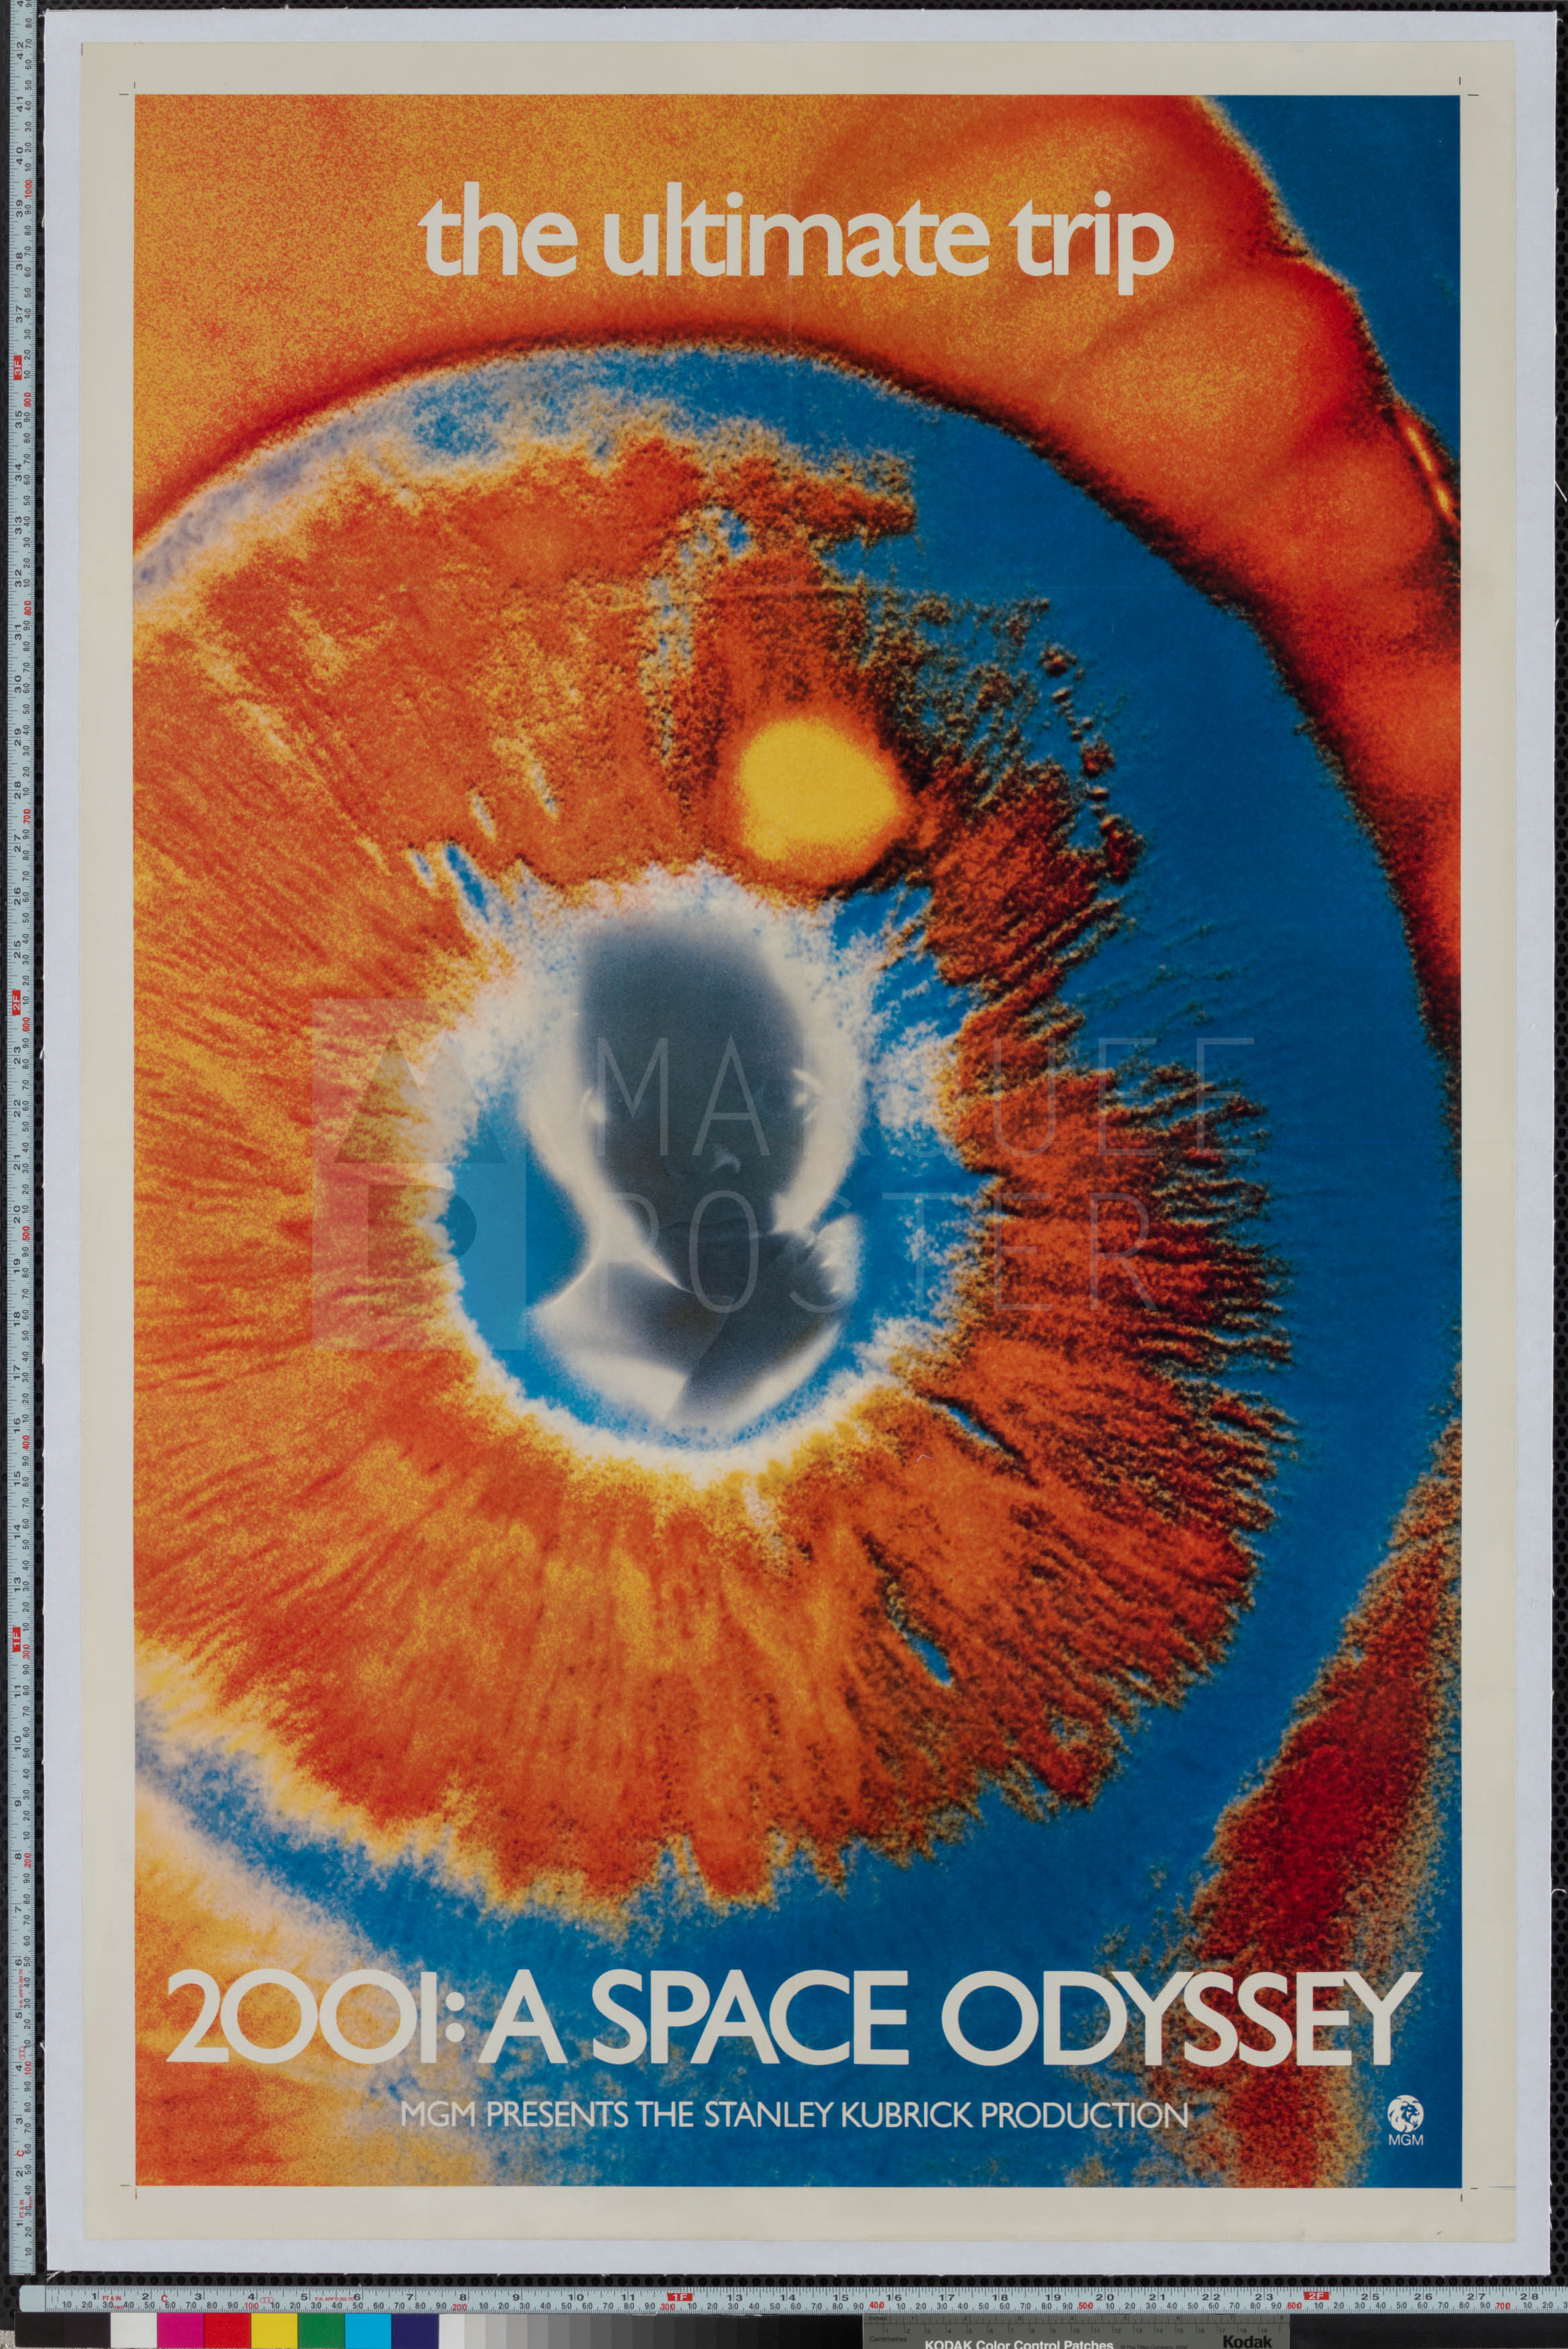 42-2001-a-space-odyssey-psychedelic-eye-wilding-us-1-sheet-1968-02